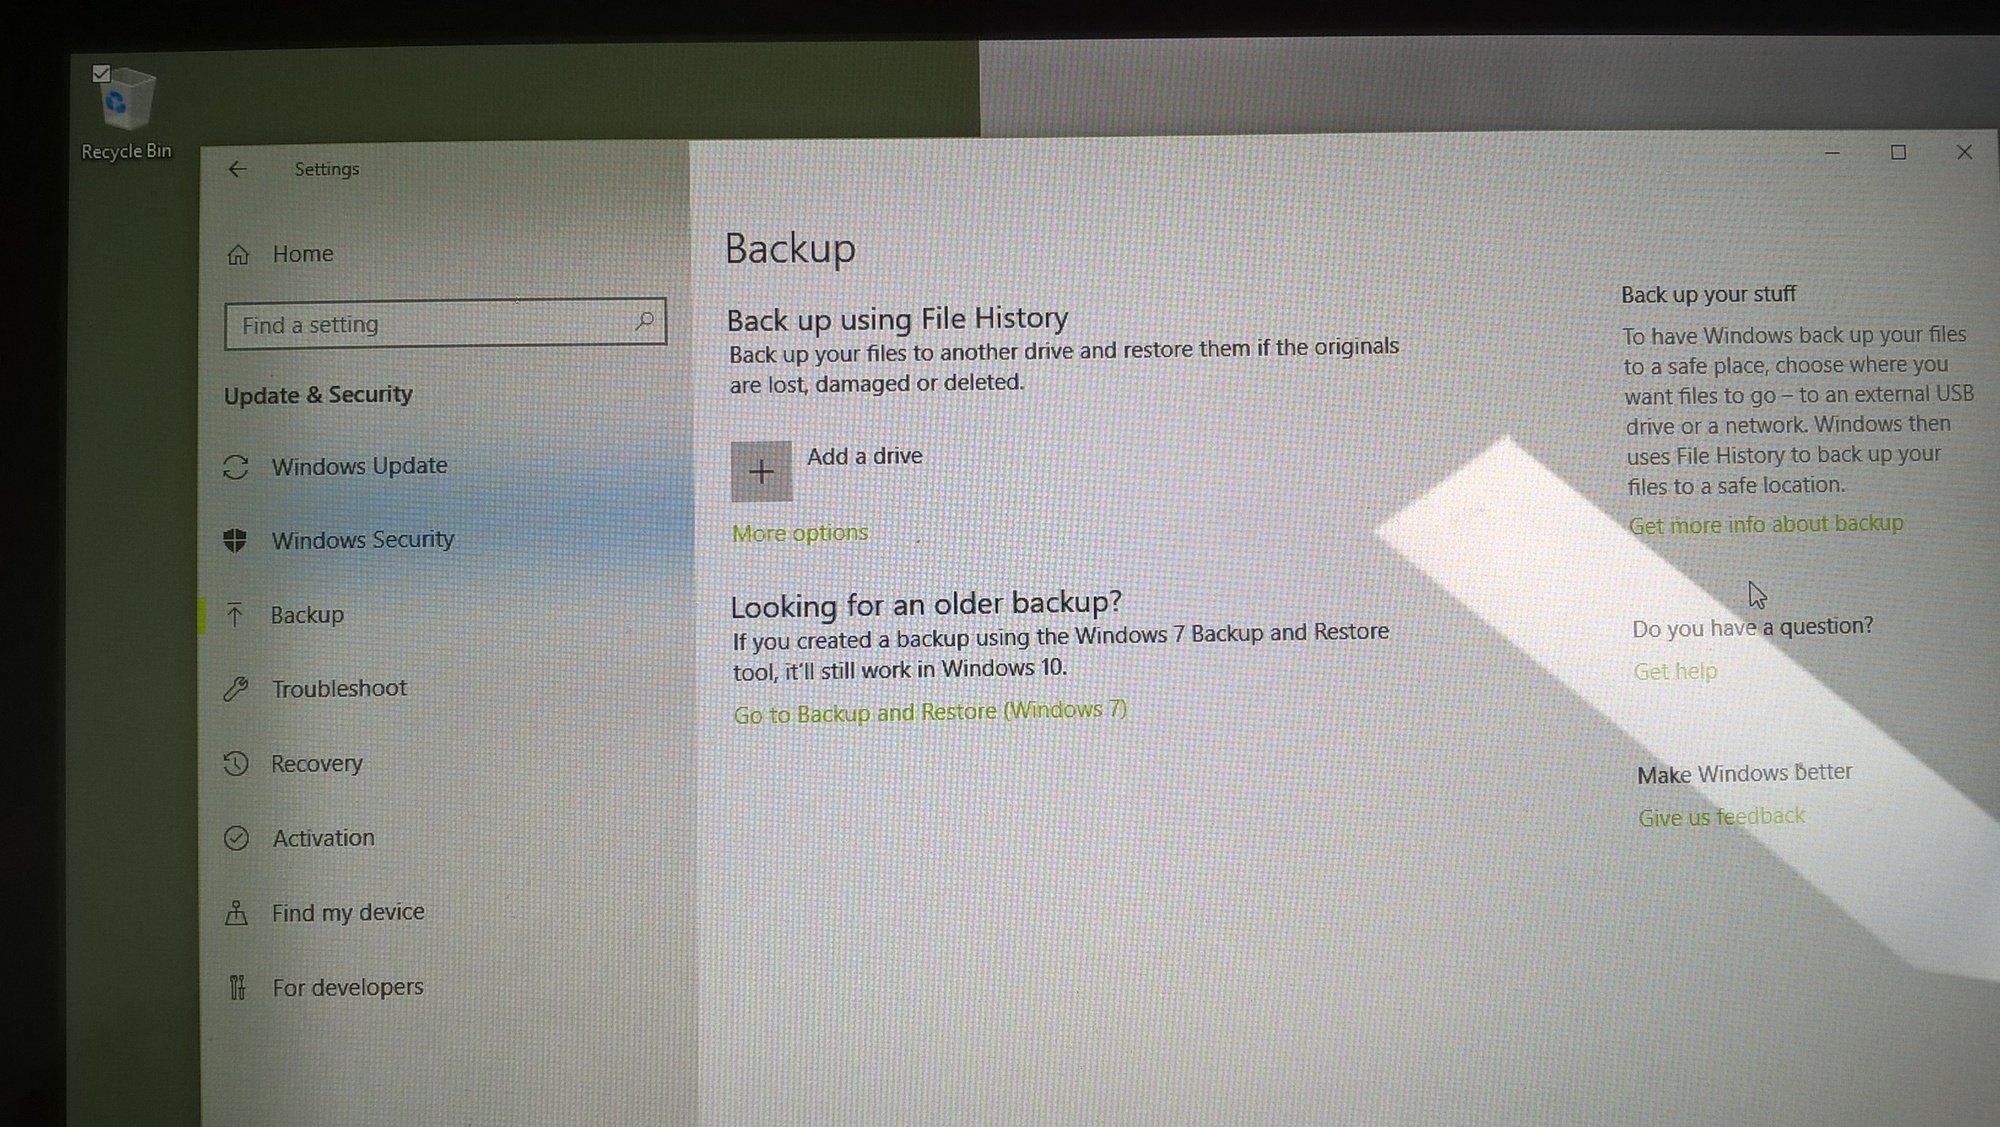 Back up and restore - two questions 708b161b-9916-4a90-a3f4-9c559e7f542a?upload=true.jpg